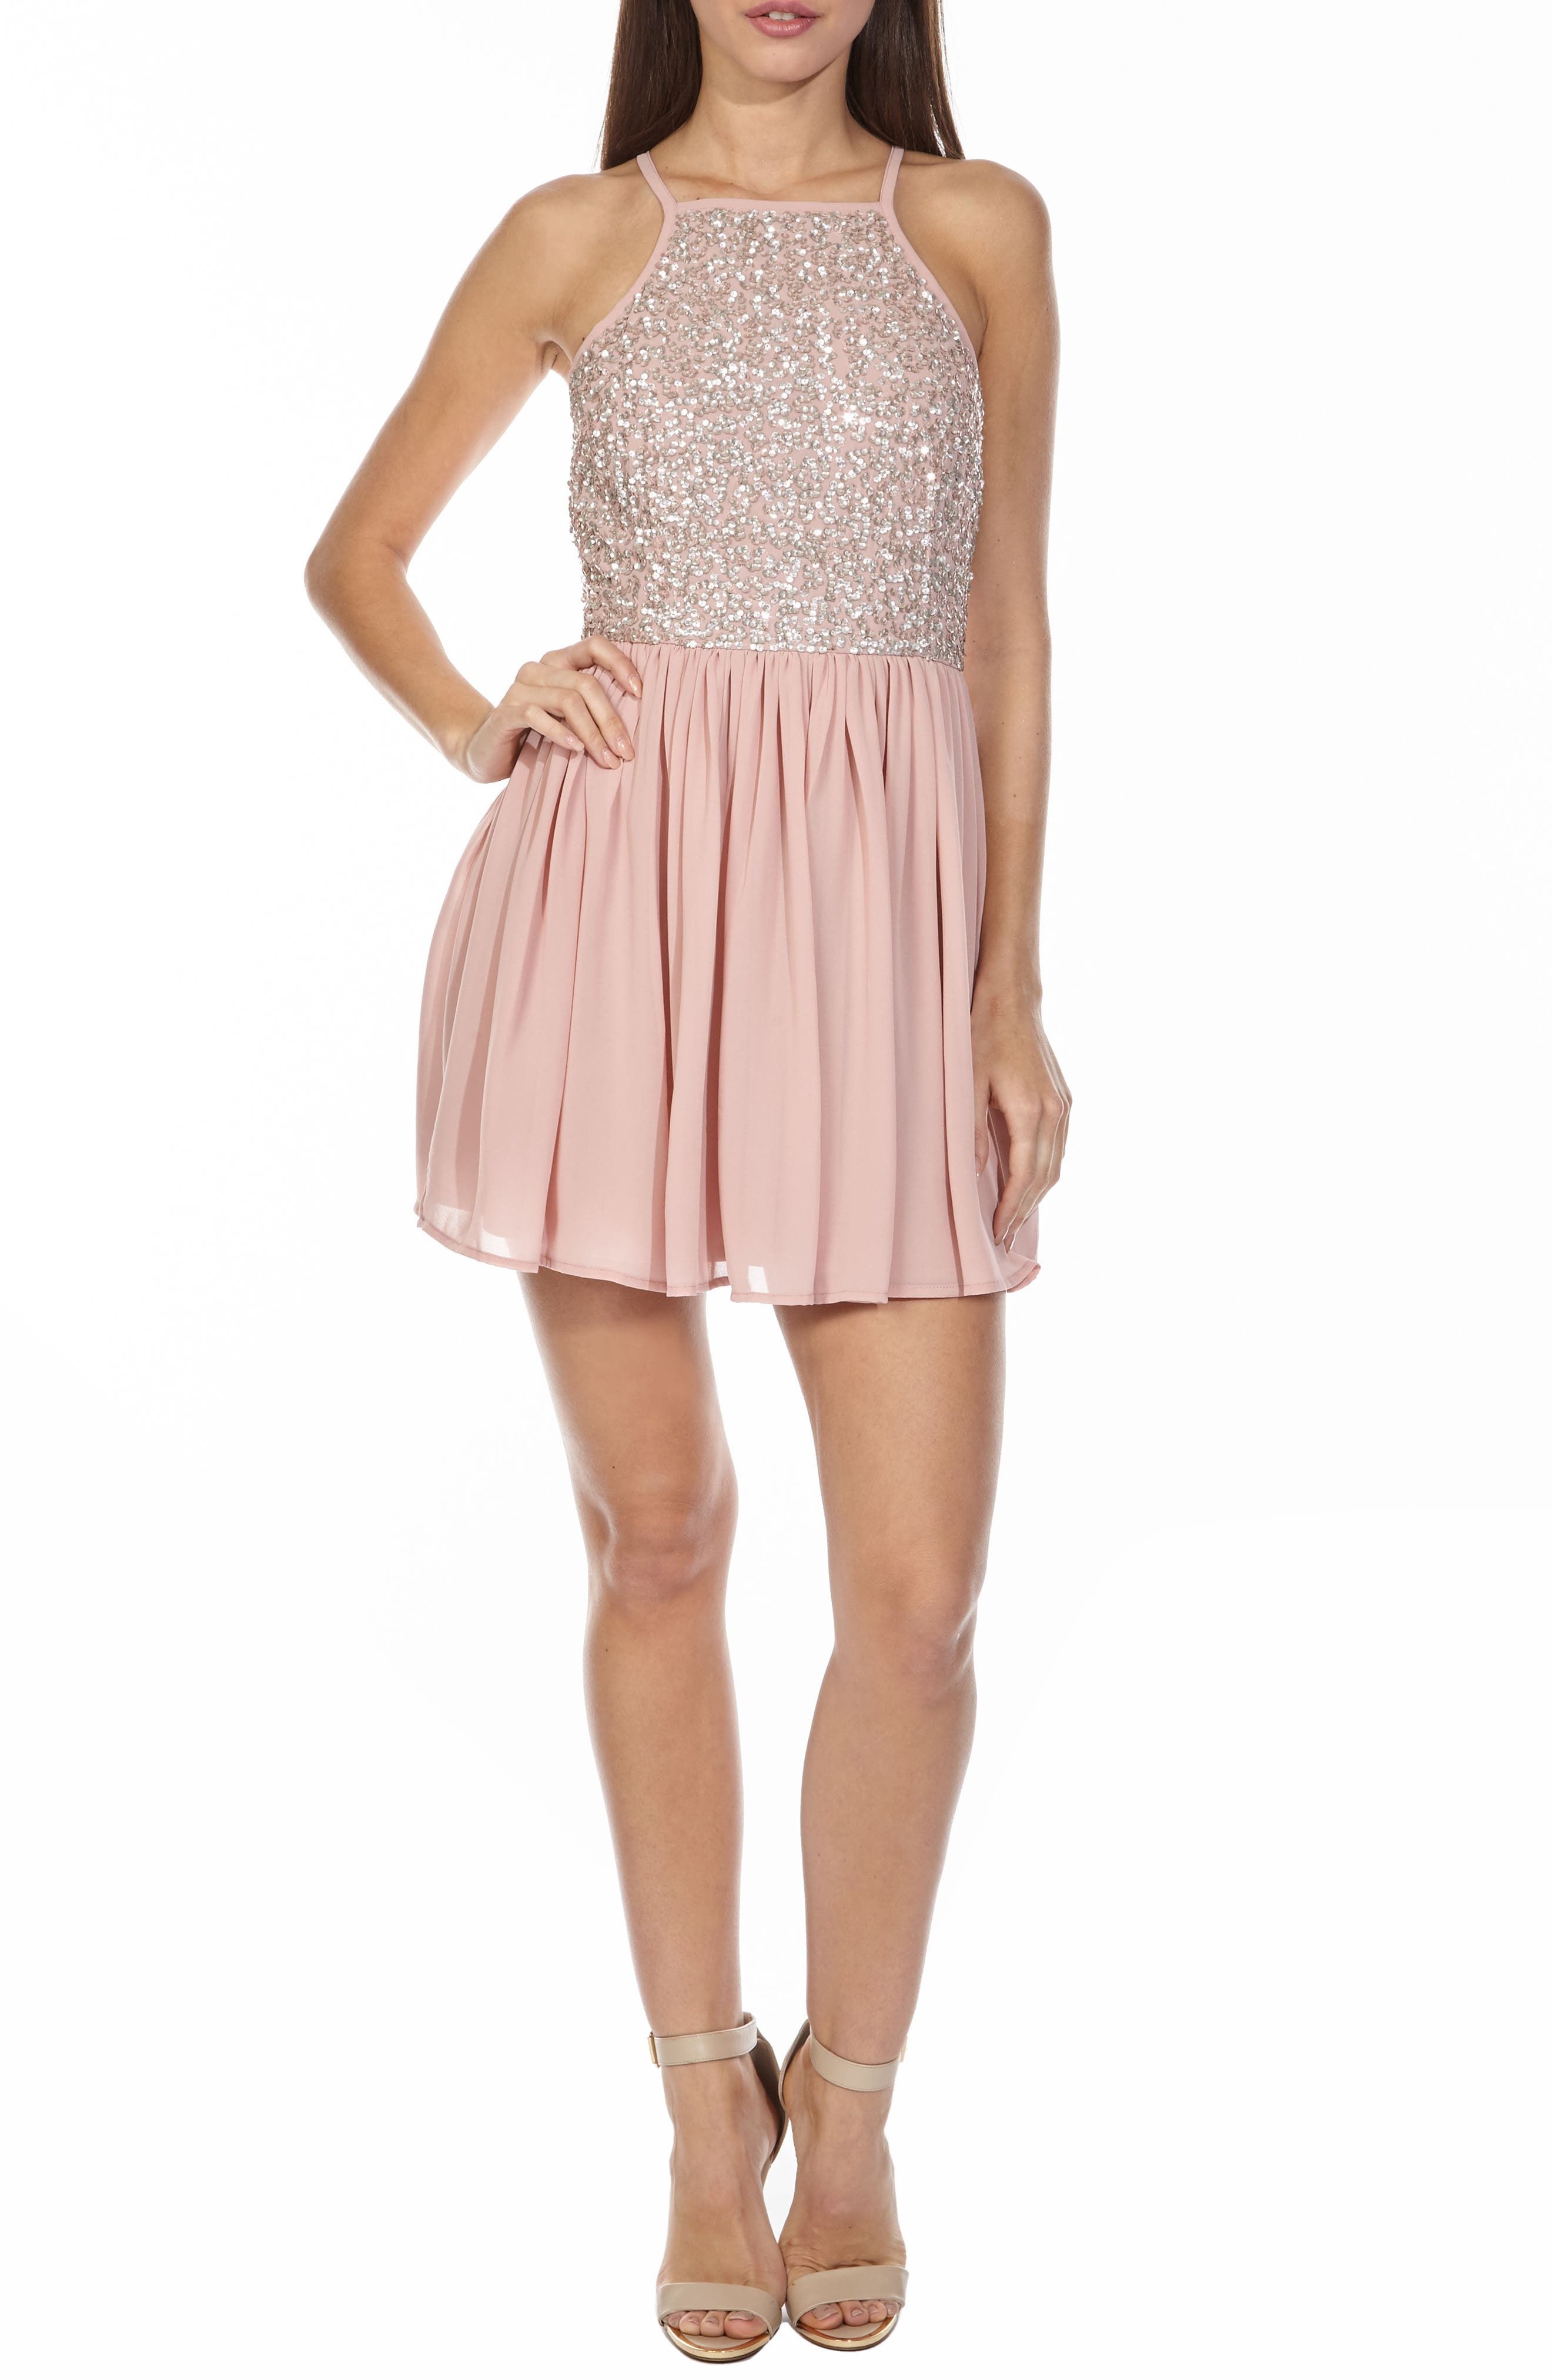 Main Image - Lace & Beads Sprinkle Sequin Skater Dress